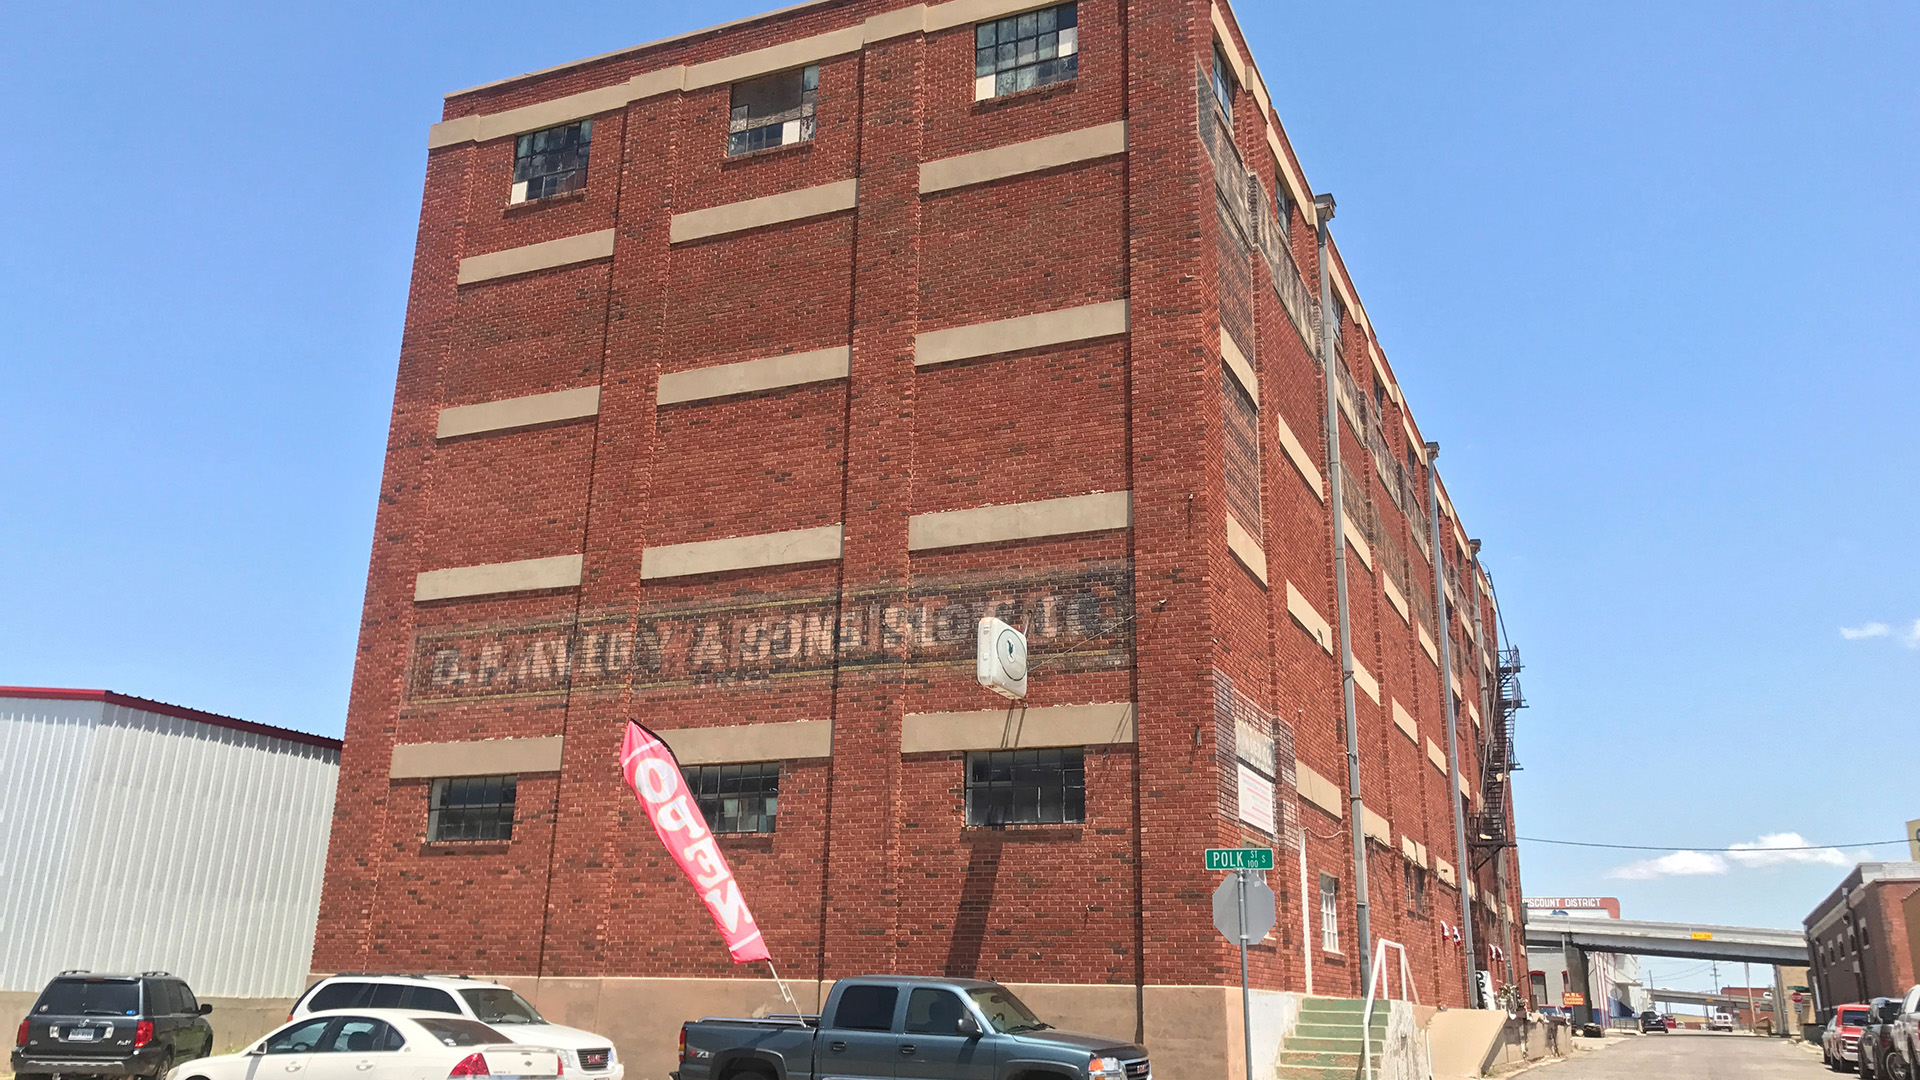 Historical warehouse active again